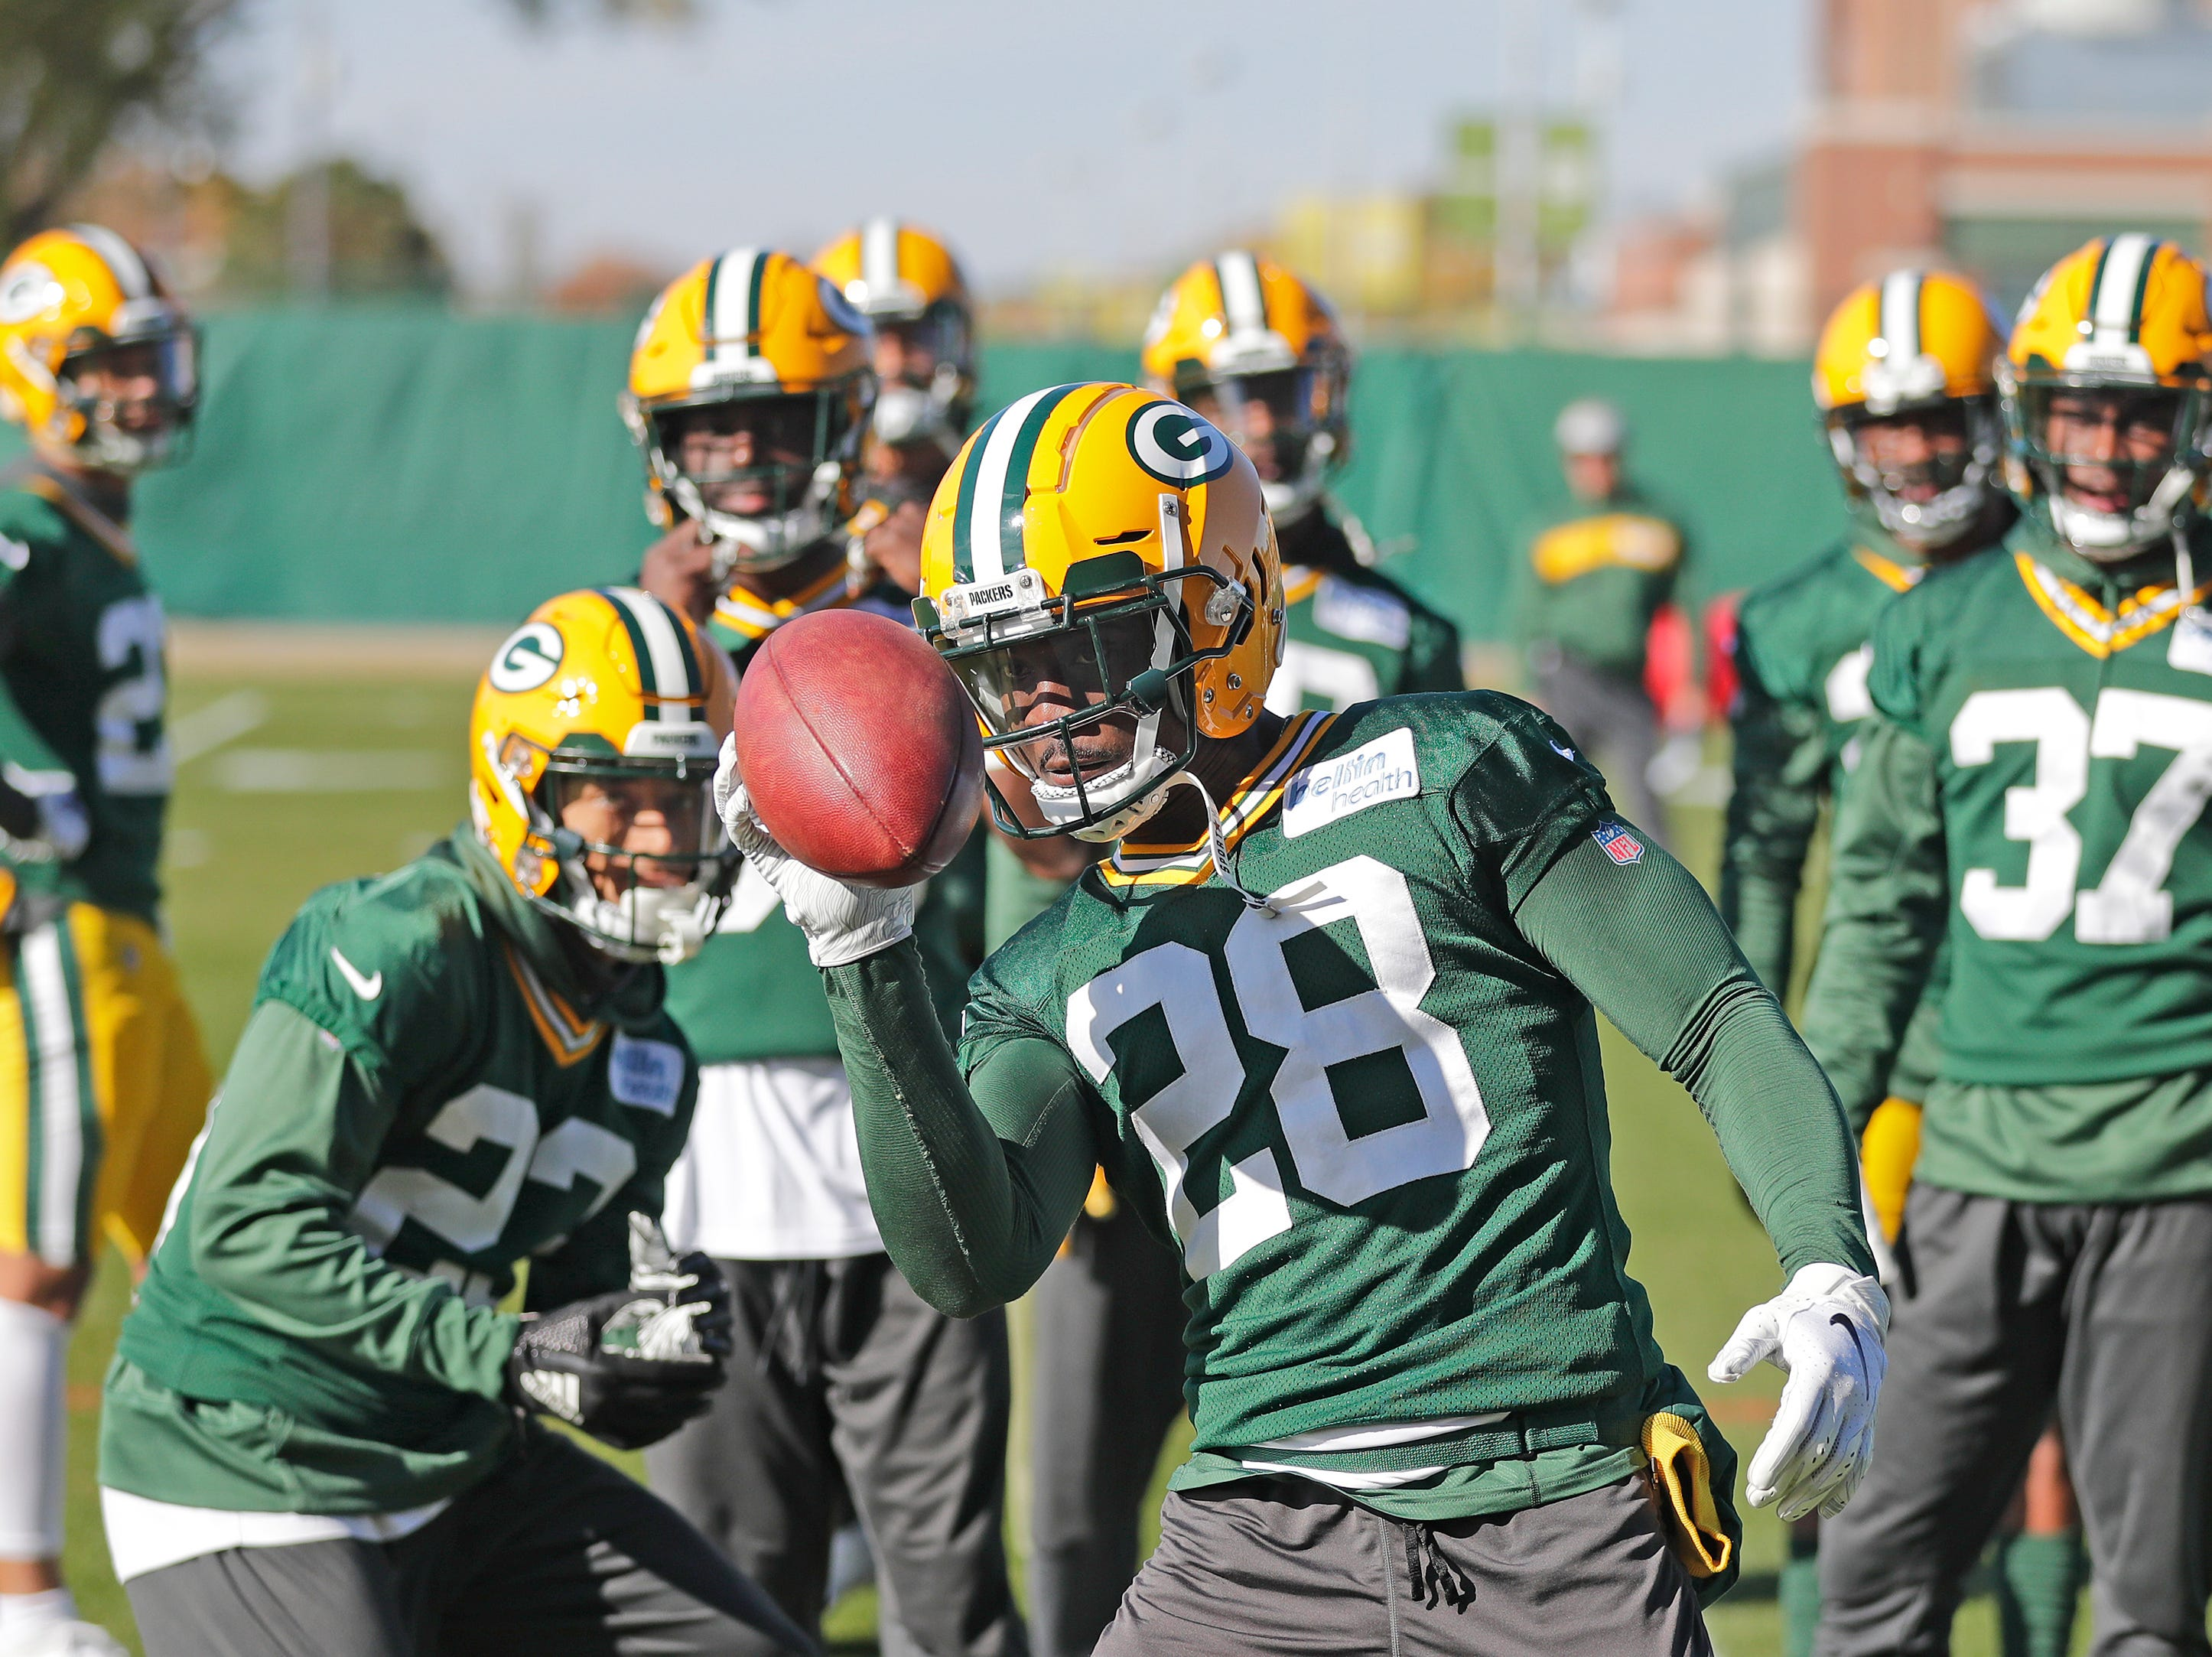 Green Bay Packers defensive back Tony Brown (28) works on one-handed catches during practice at Ray Nitschke Field on Wednesday, October 31, 2018 in Ashwaubenon, Wis.